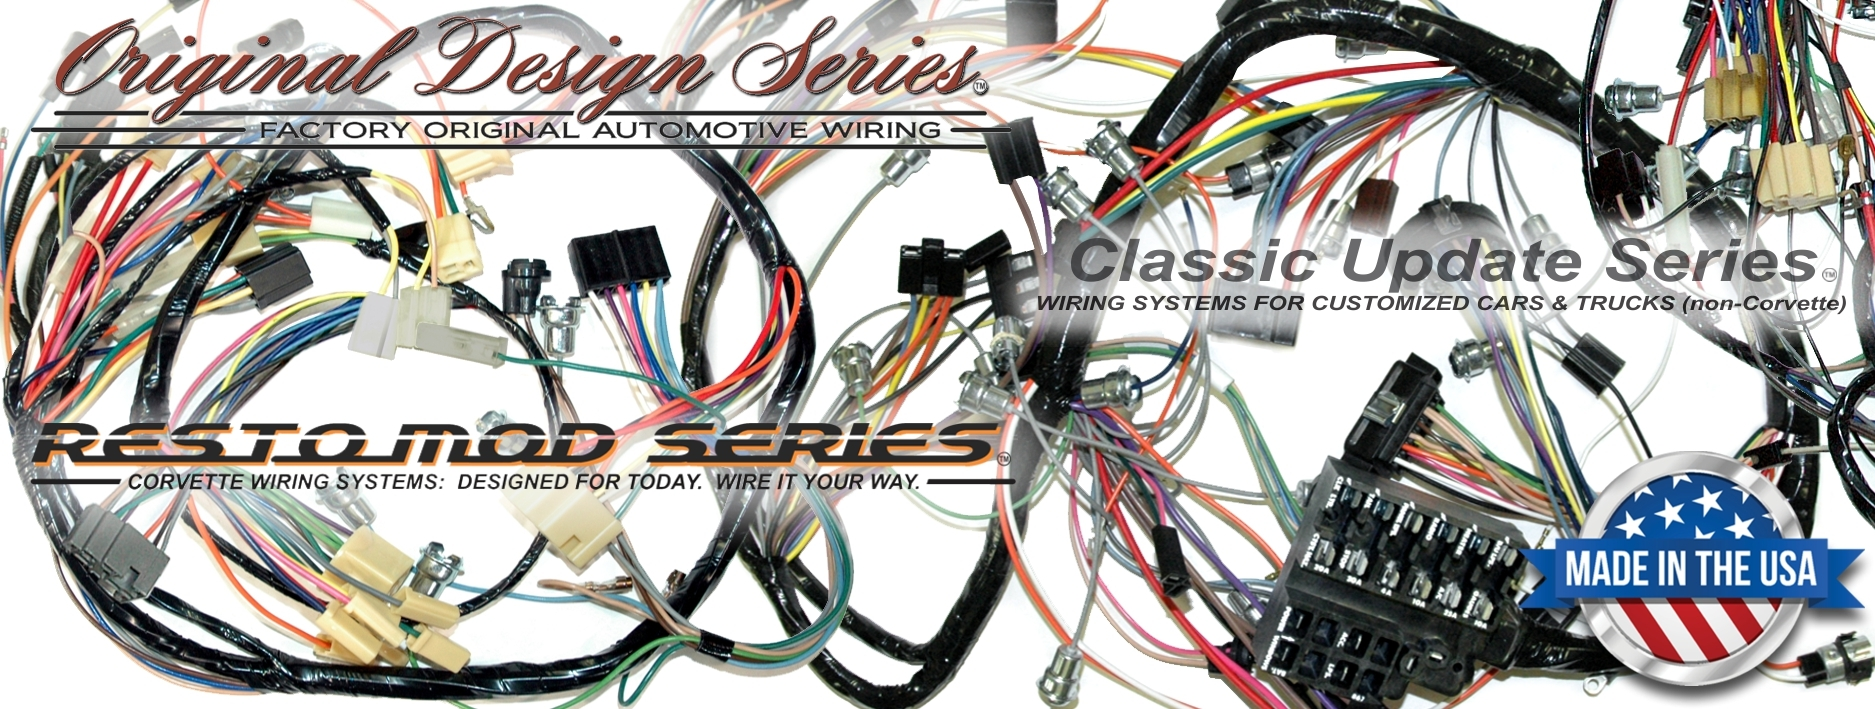 new header wiring_harnesses exact oem reproduction wiring harnesses and restomod wiring c3 corvette engine wiring harness at readyjetset.co